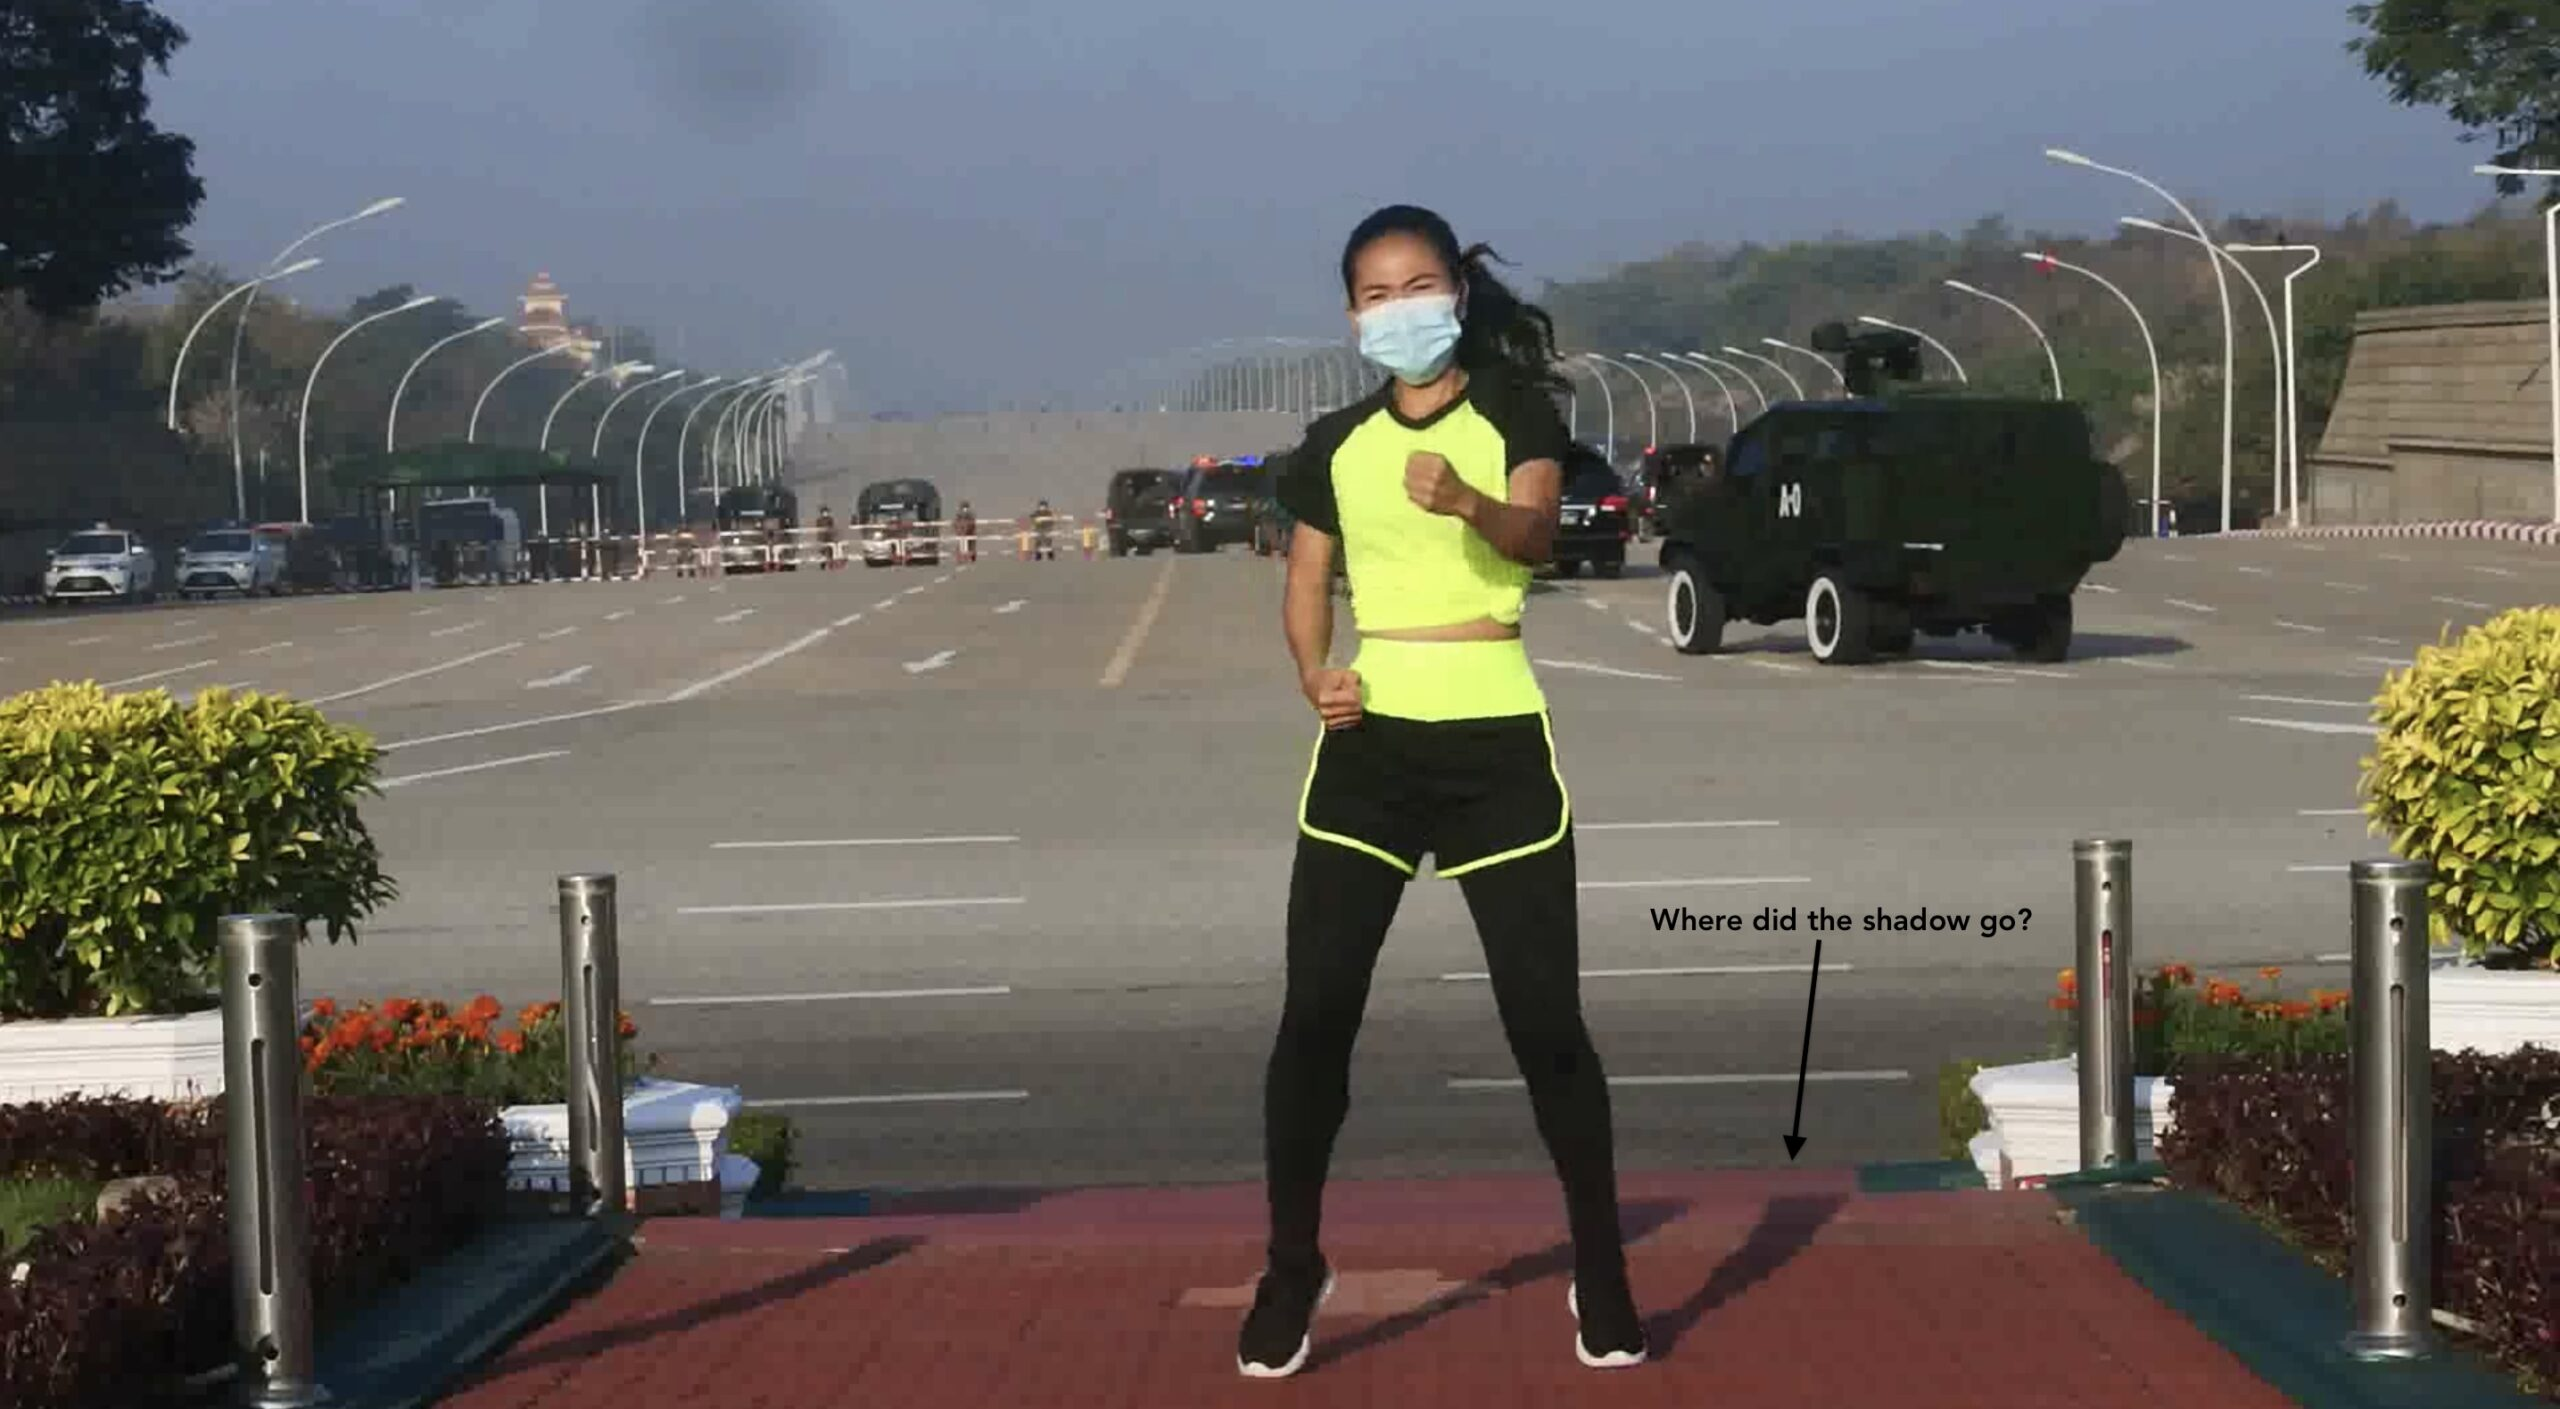 Perspective is Everything: Authenticating the Aerobics Video during the Myanmar Coup